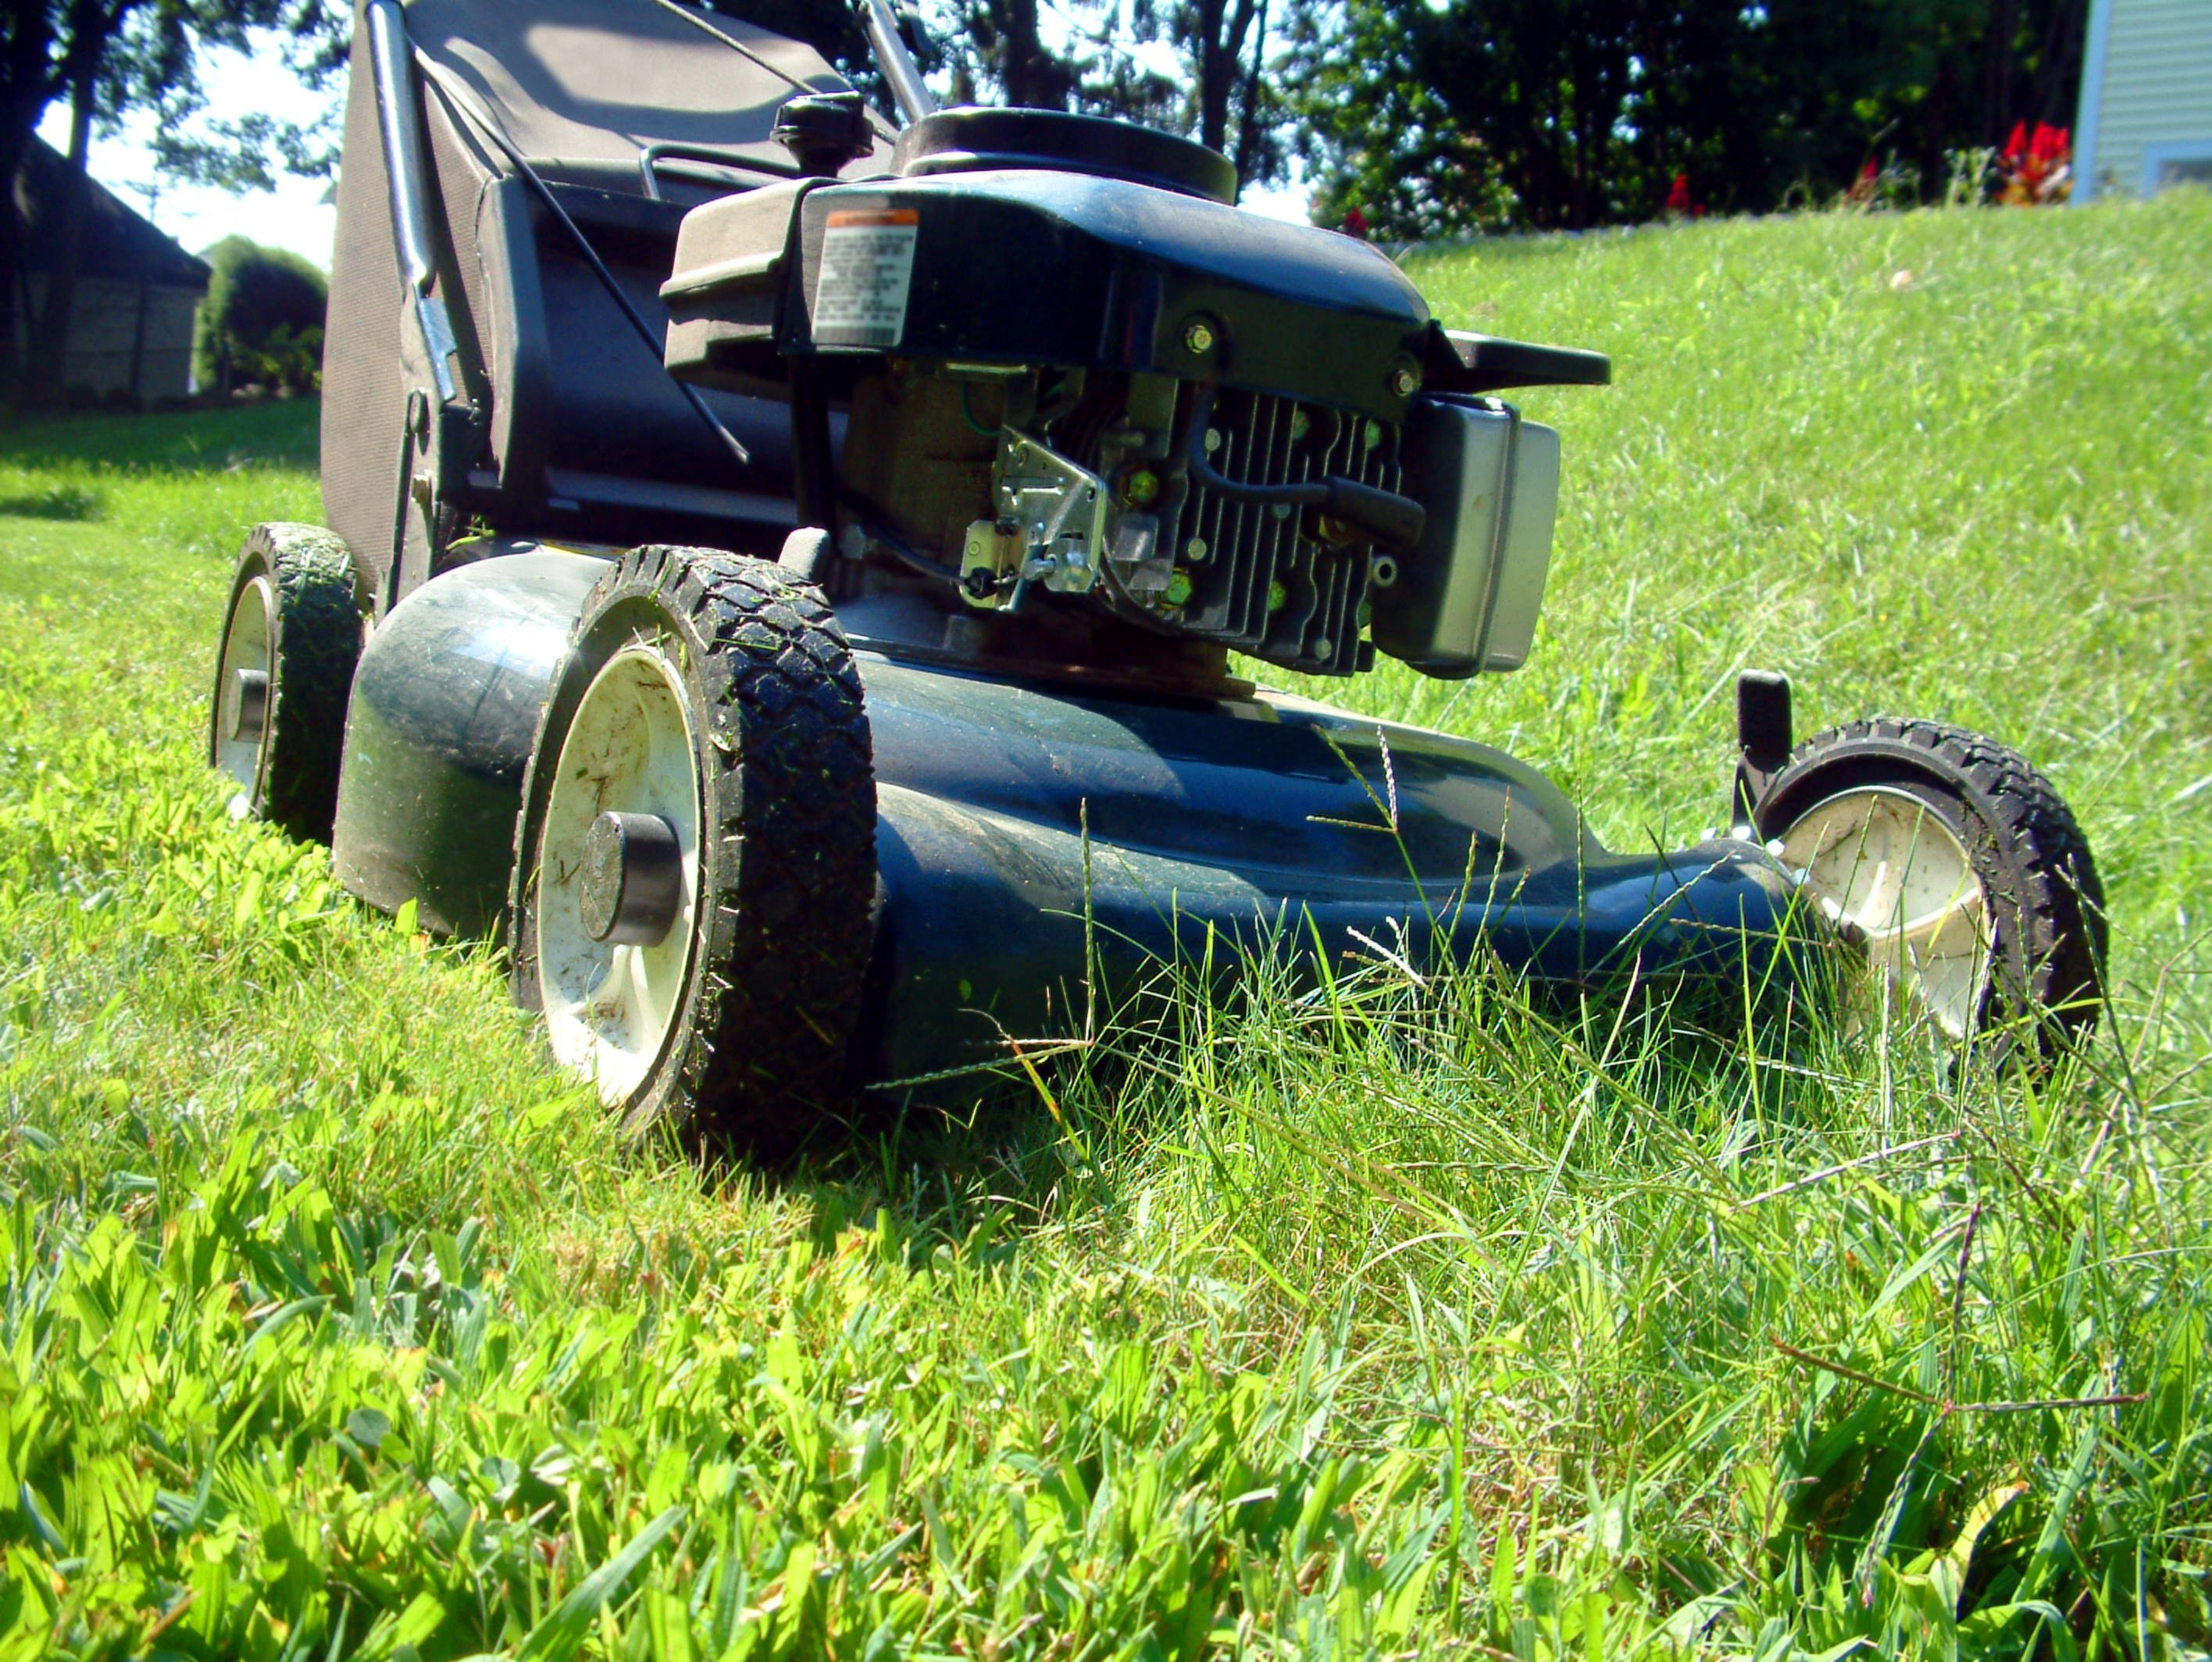 A Basic Part of Lawn Mower Maintenance